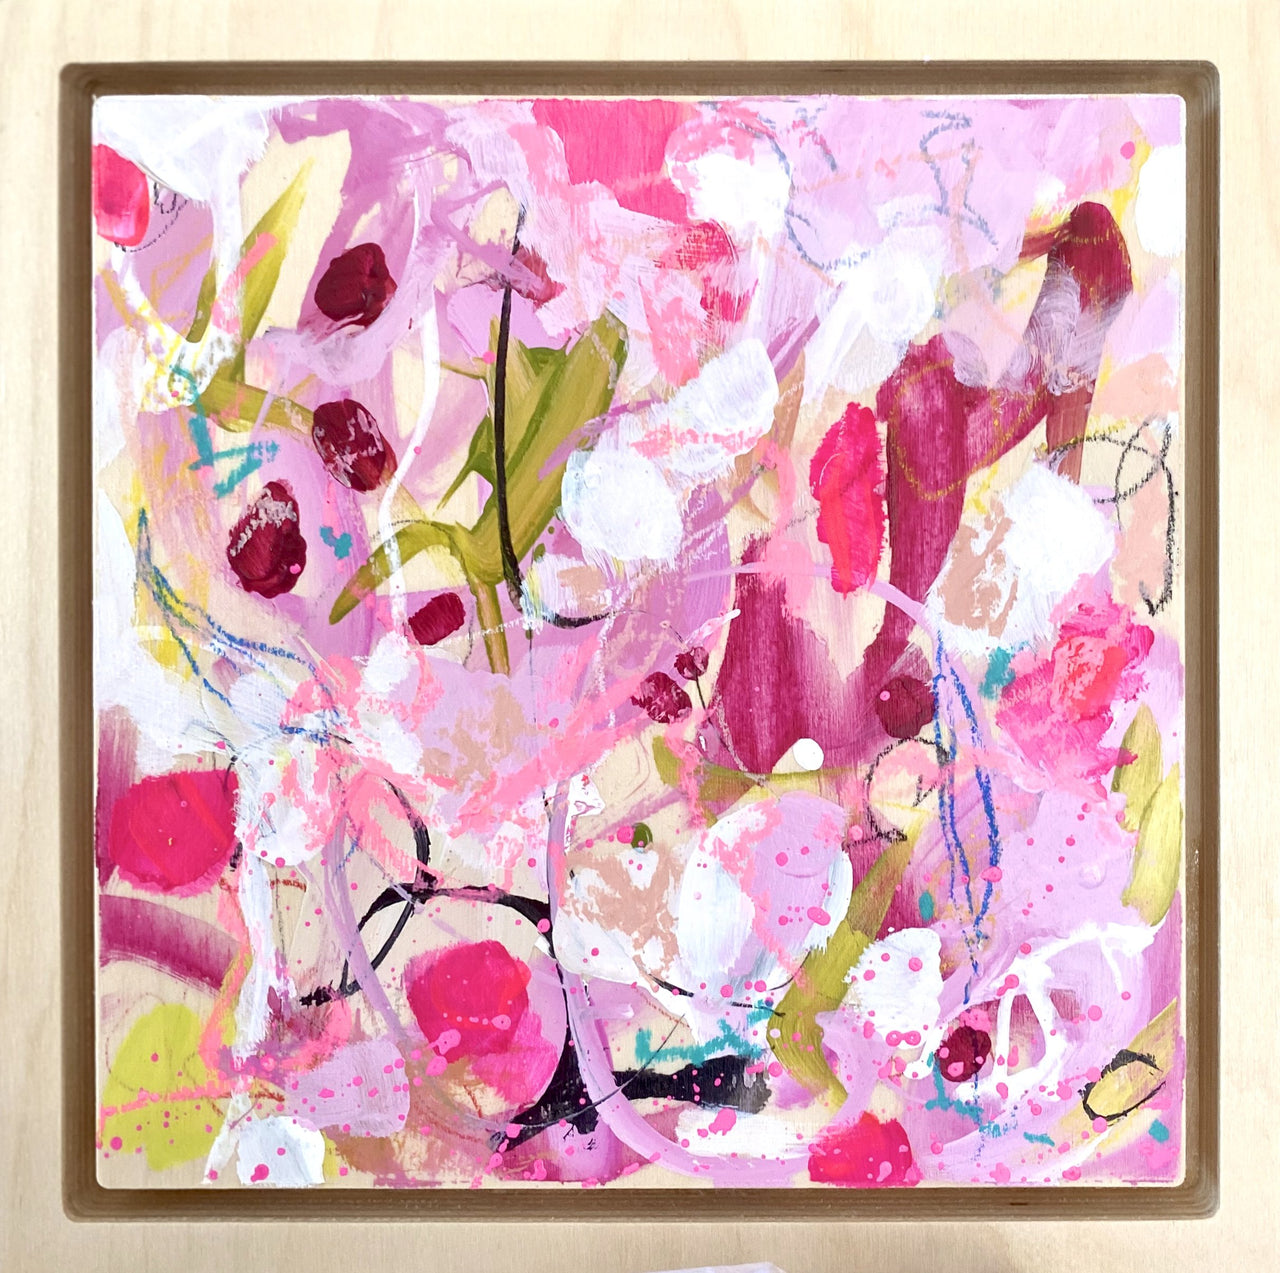 "Rosy 2 - 8 x 8"" Original Abstract on Birchwood panel & frame"